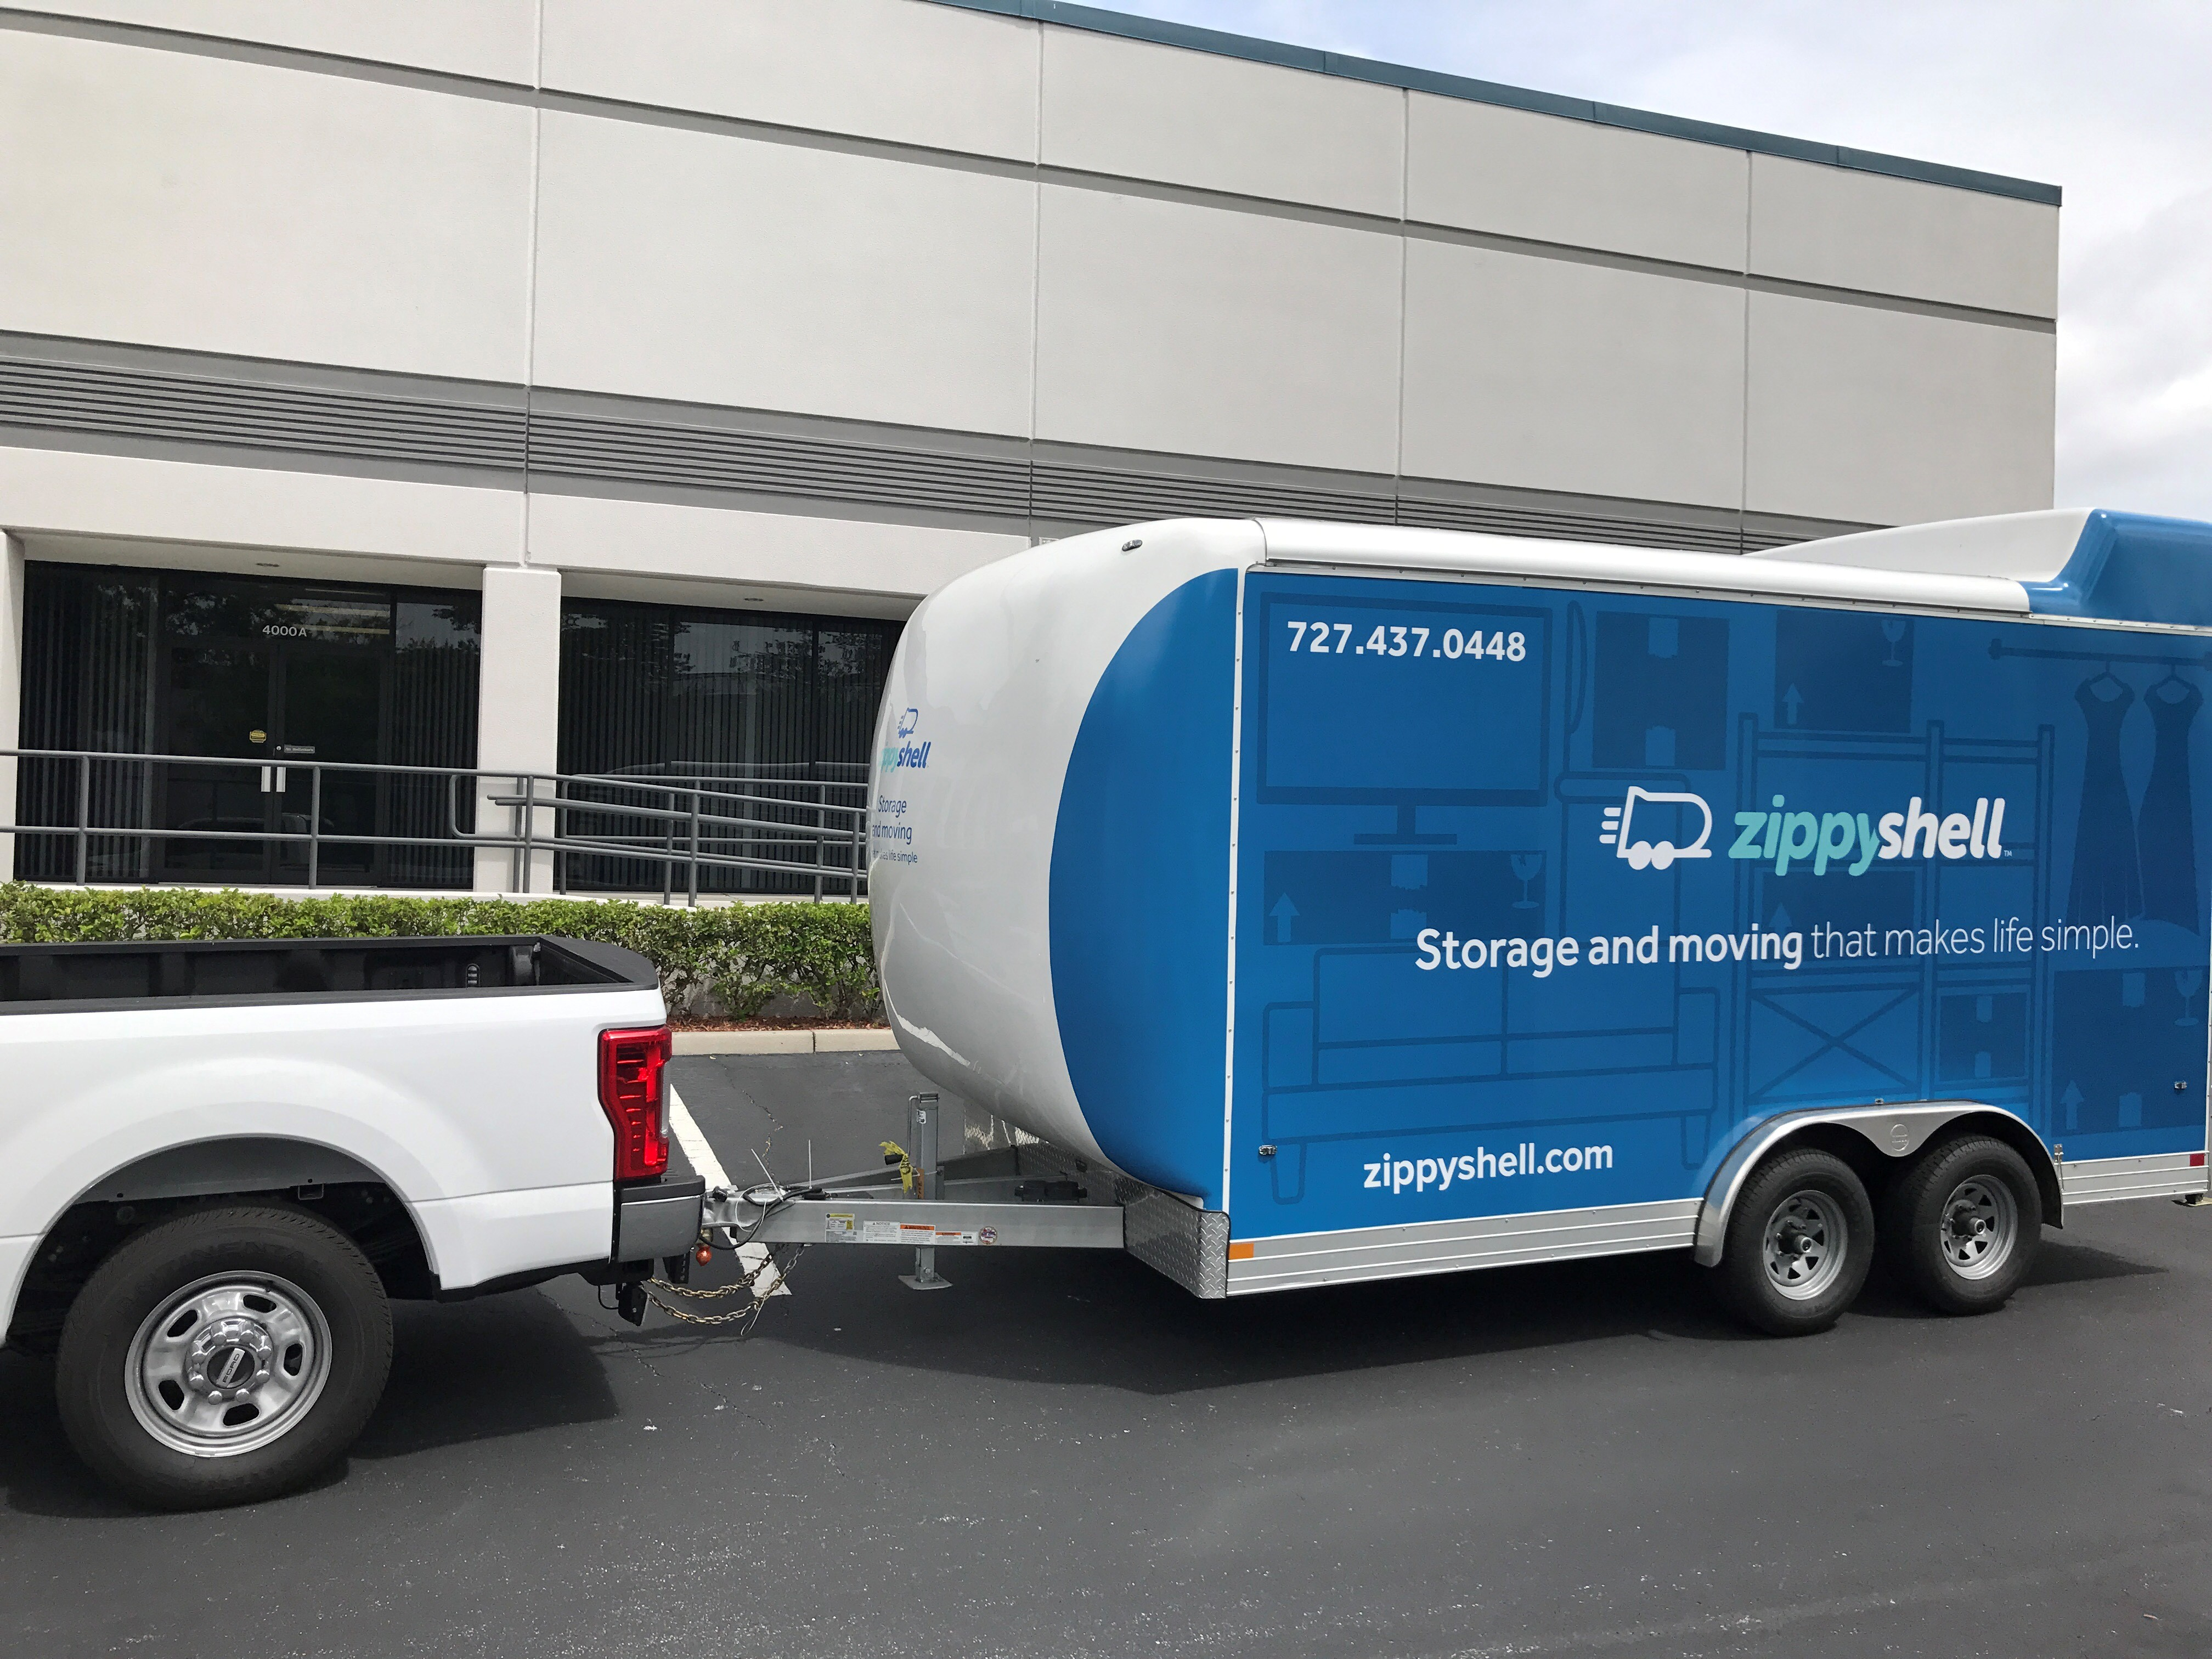 For Maps And Directions To Zippy Shell Moving U0026 Storage Of Tampa Bay View  The Map To The Right. For Reviews Of Zippy Shell Moving U0026 Storage Of Tampa  Bay See ...